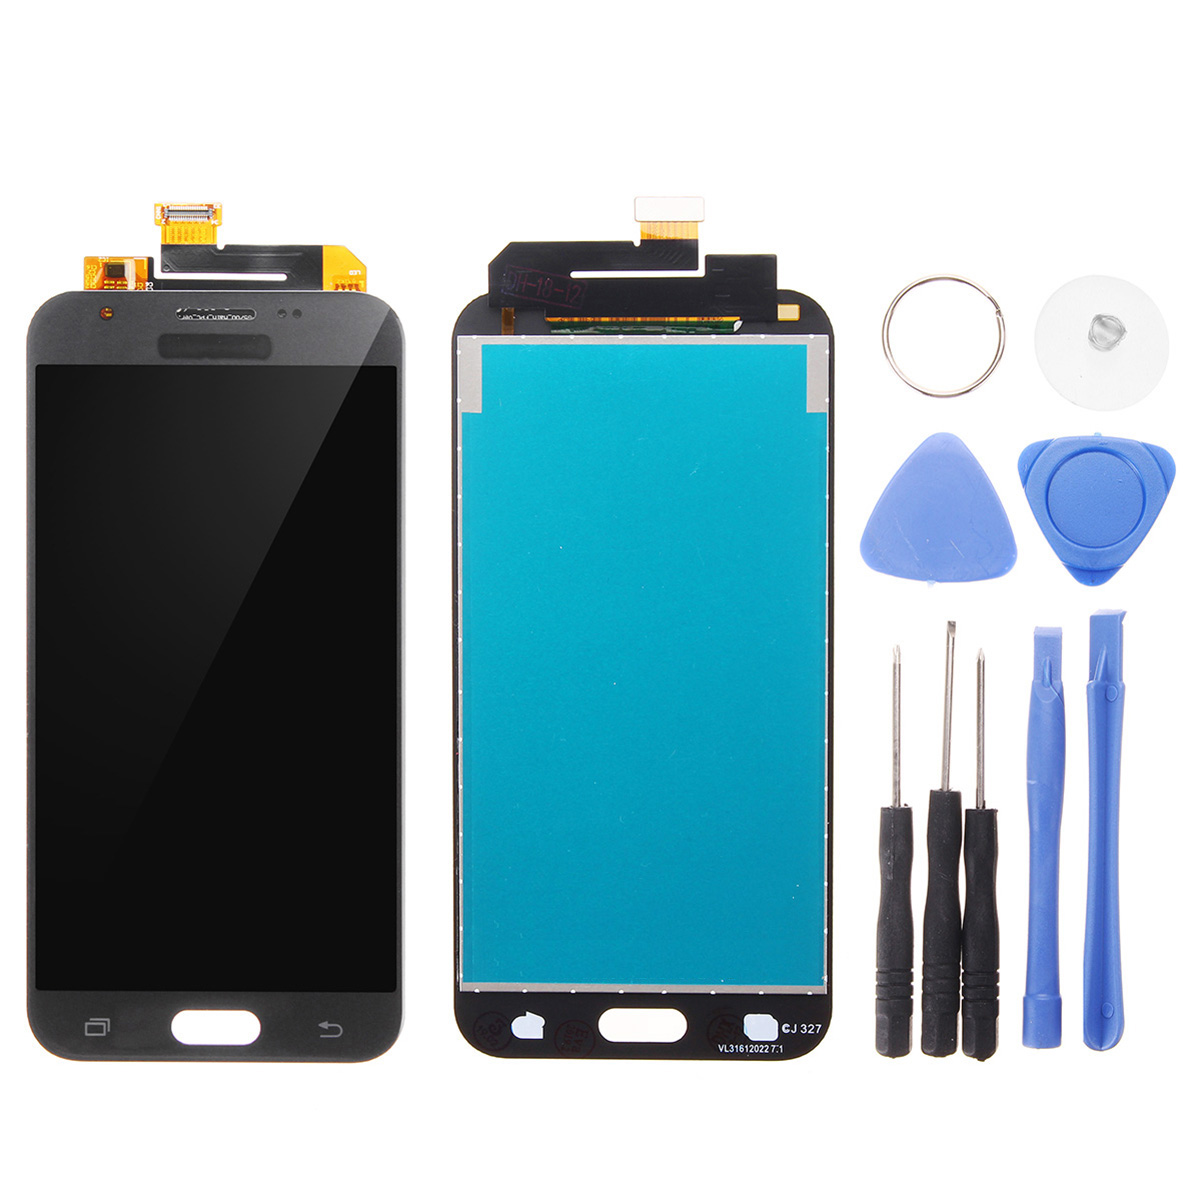 LCD Display + Touch Screen Digitizer Replacement With Repair Tools For Samsung Galaxy J3 Prime J327 2017